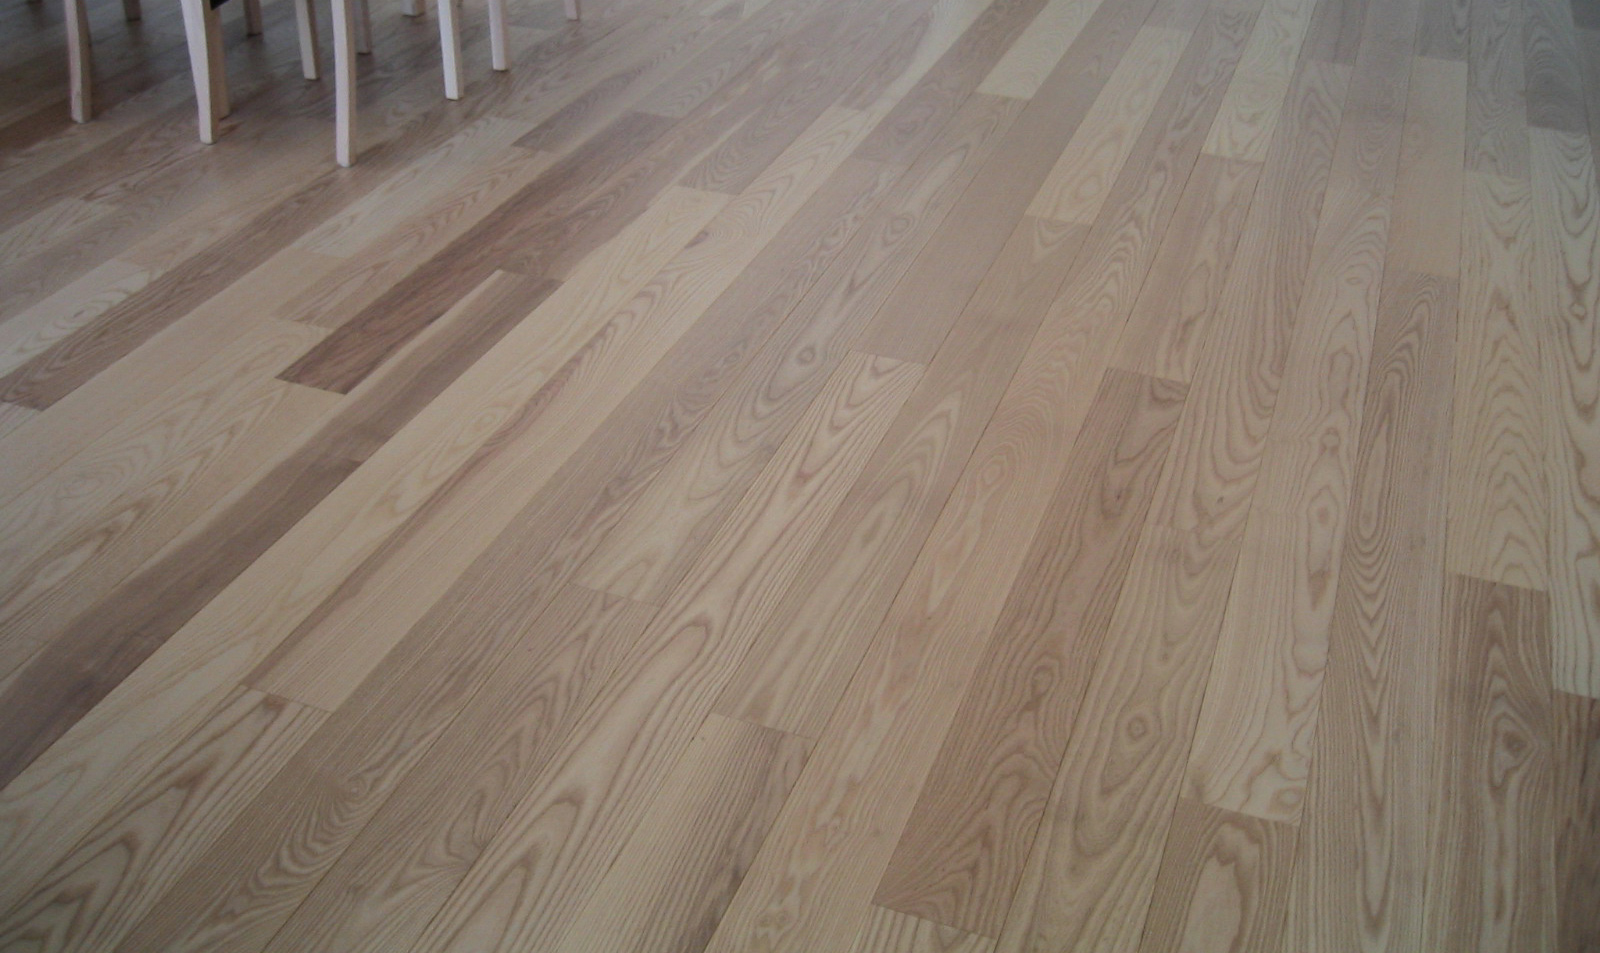 Ash flooring floors doors interior design Unfinished hardwood floors